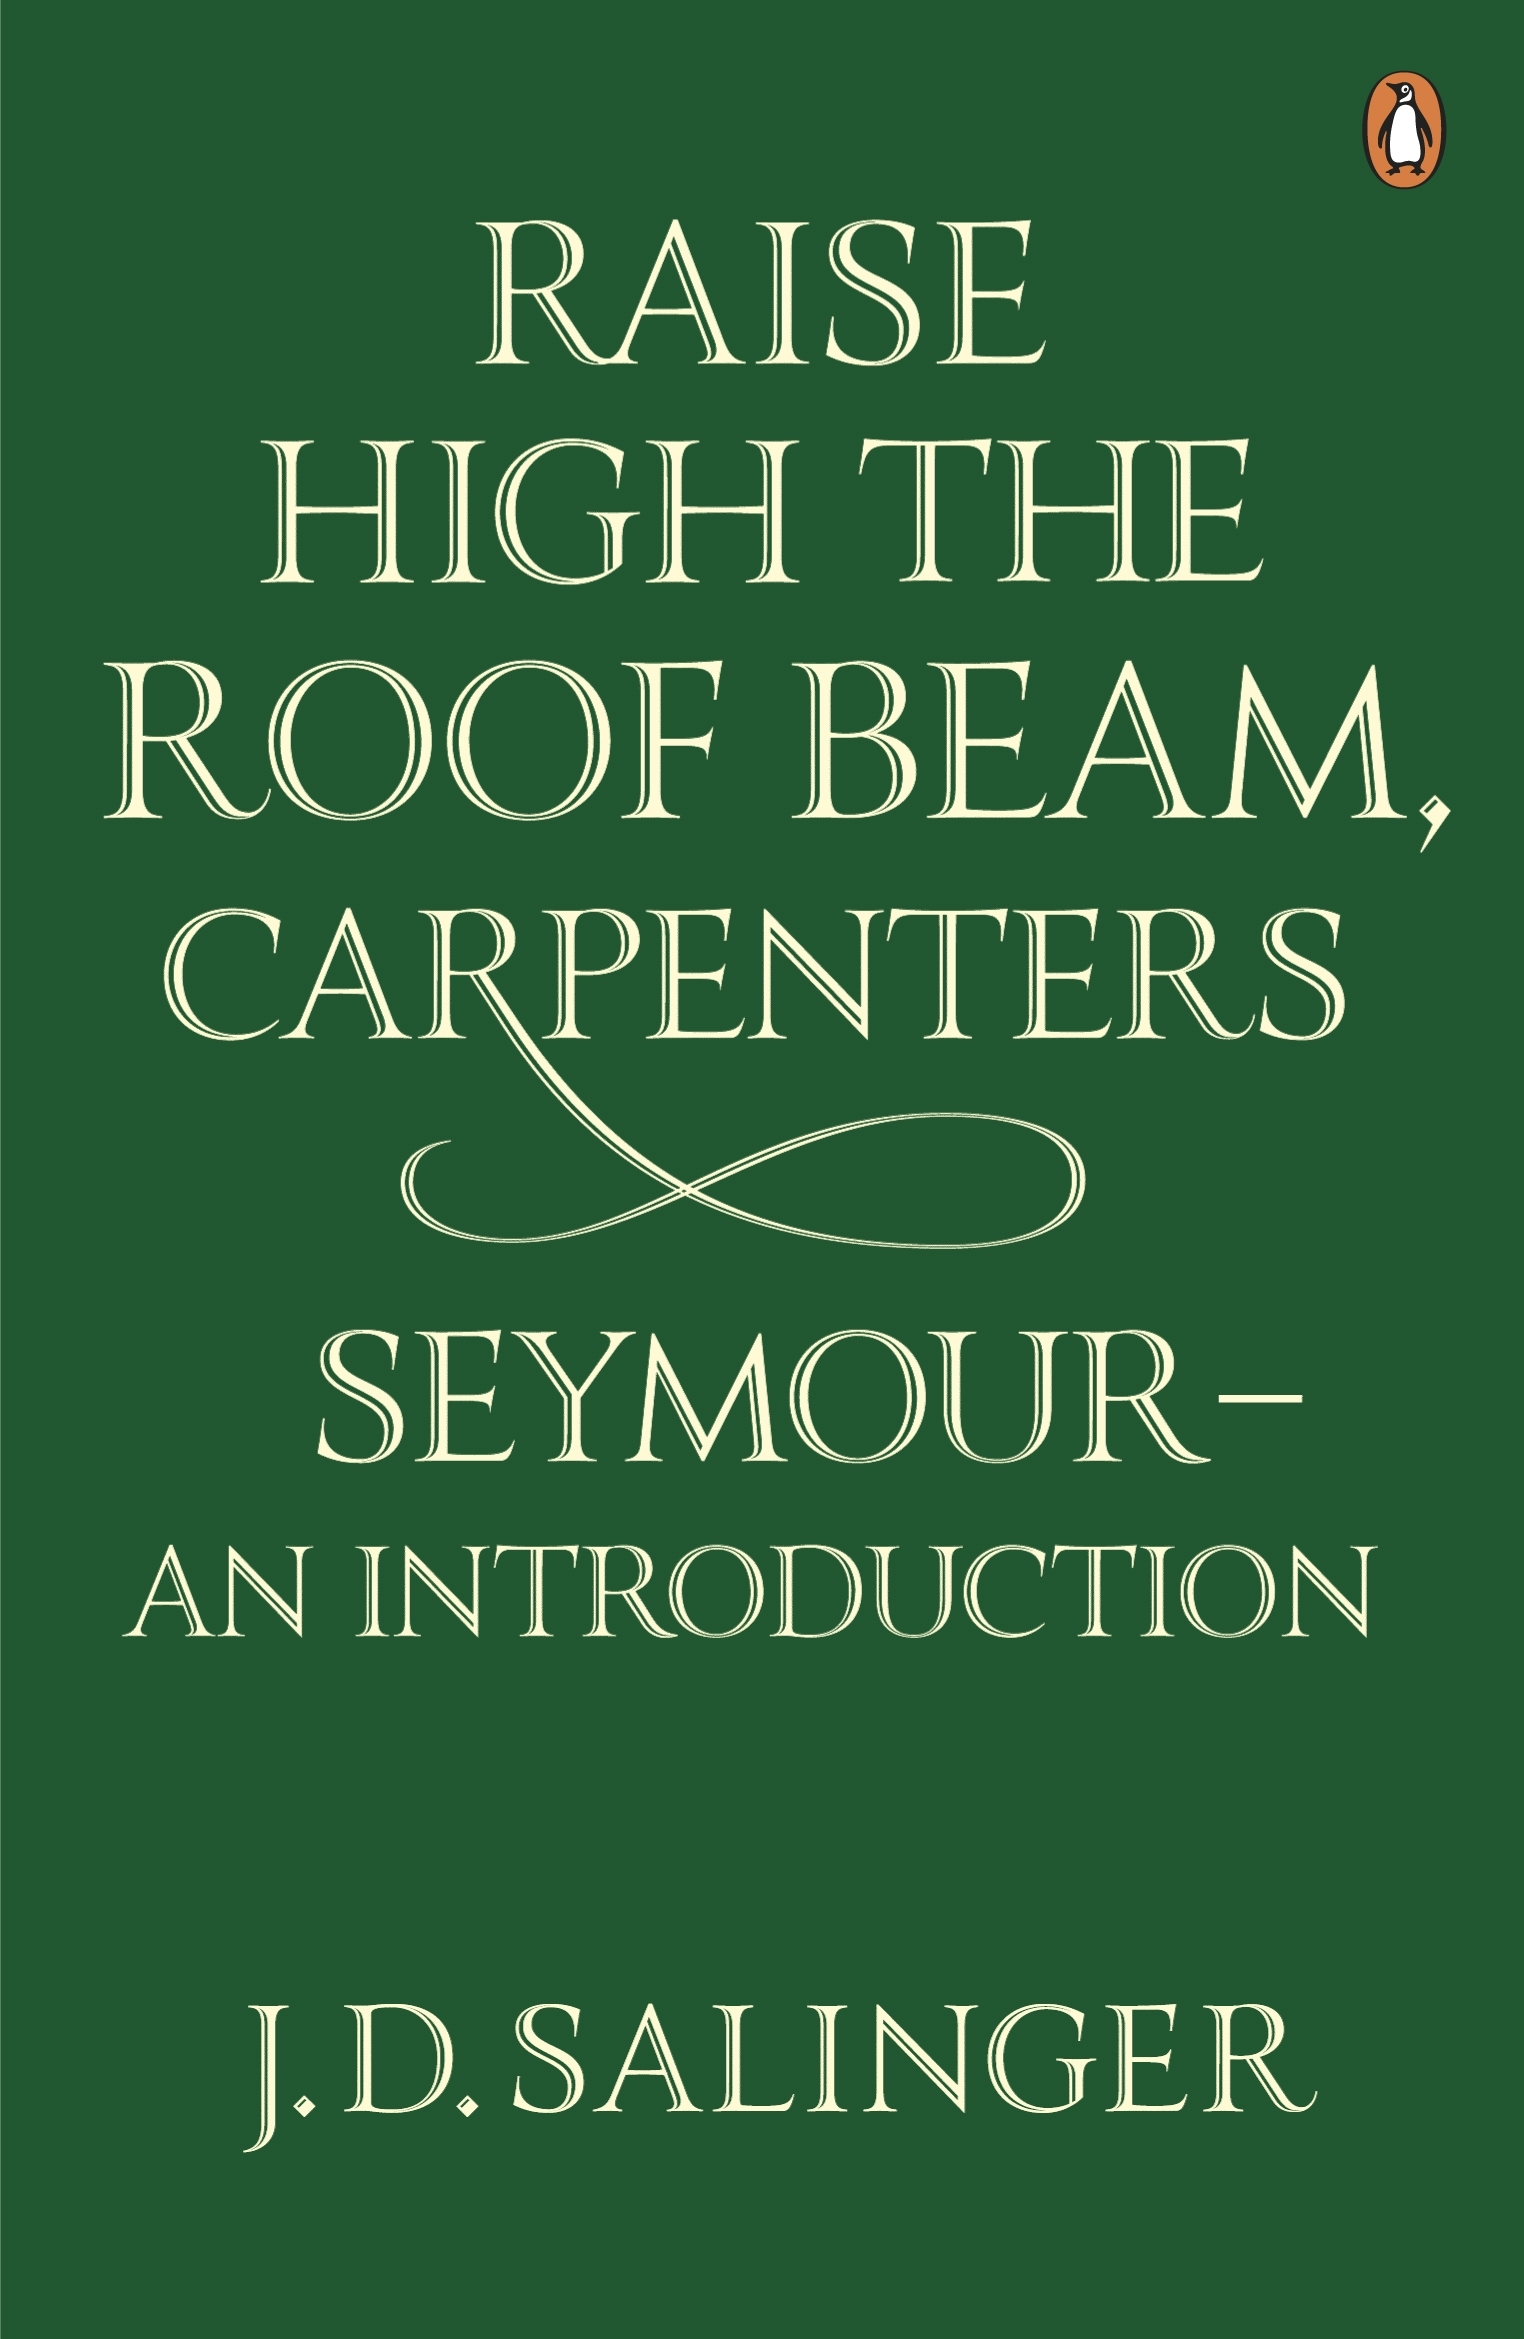 Raise High the Roof Beam, Carpenters; Seymour - an Introduction by J.D. Salinger - Penguin Books Australia